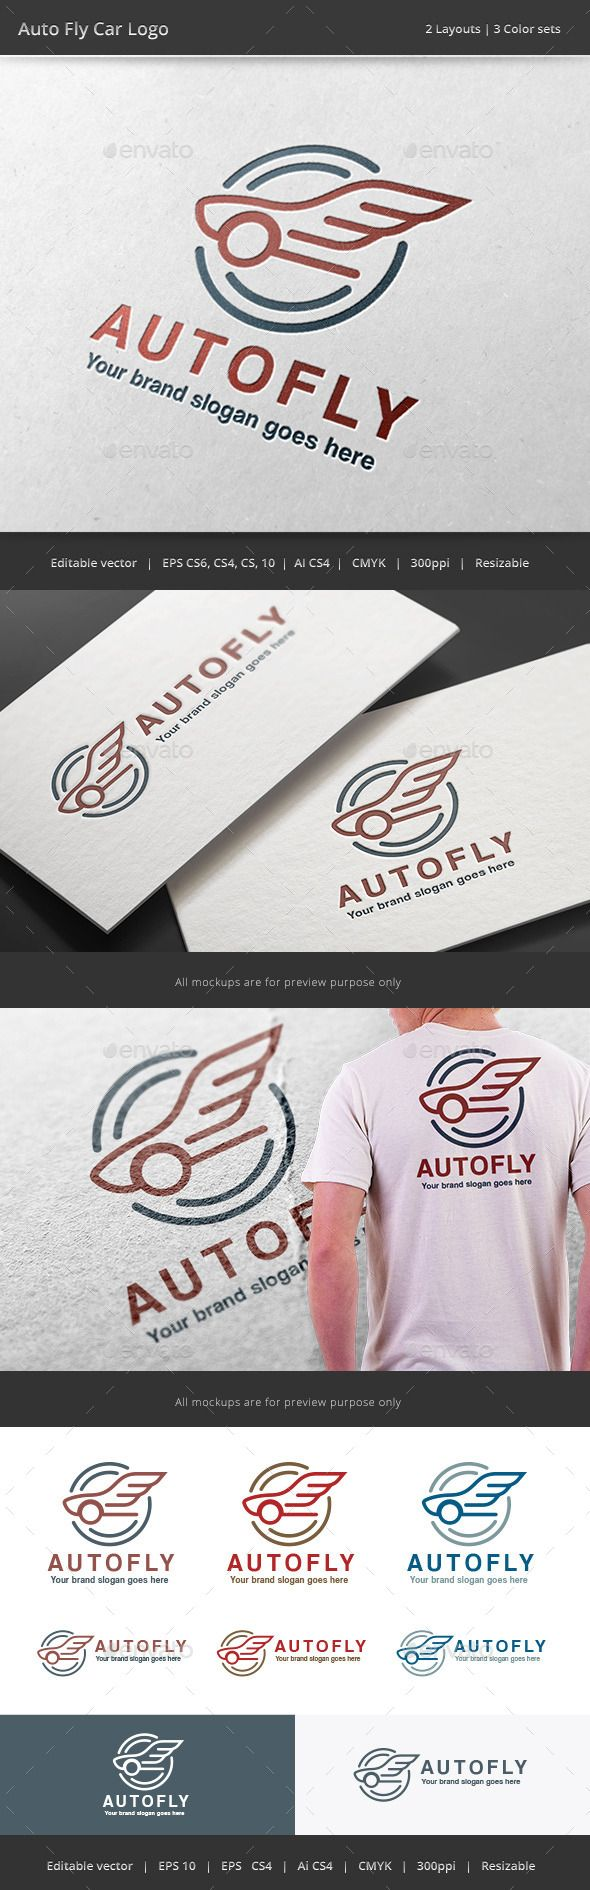 Auto Fly Car Logo